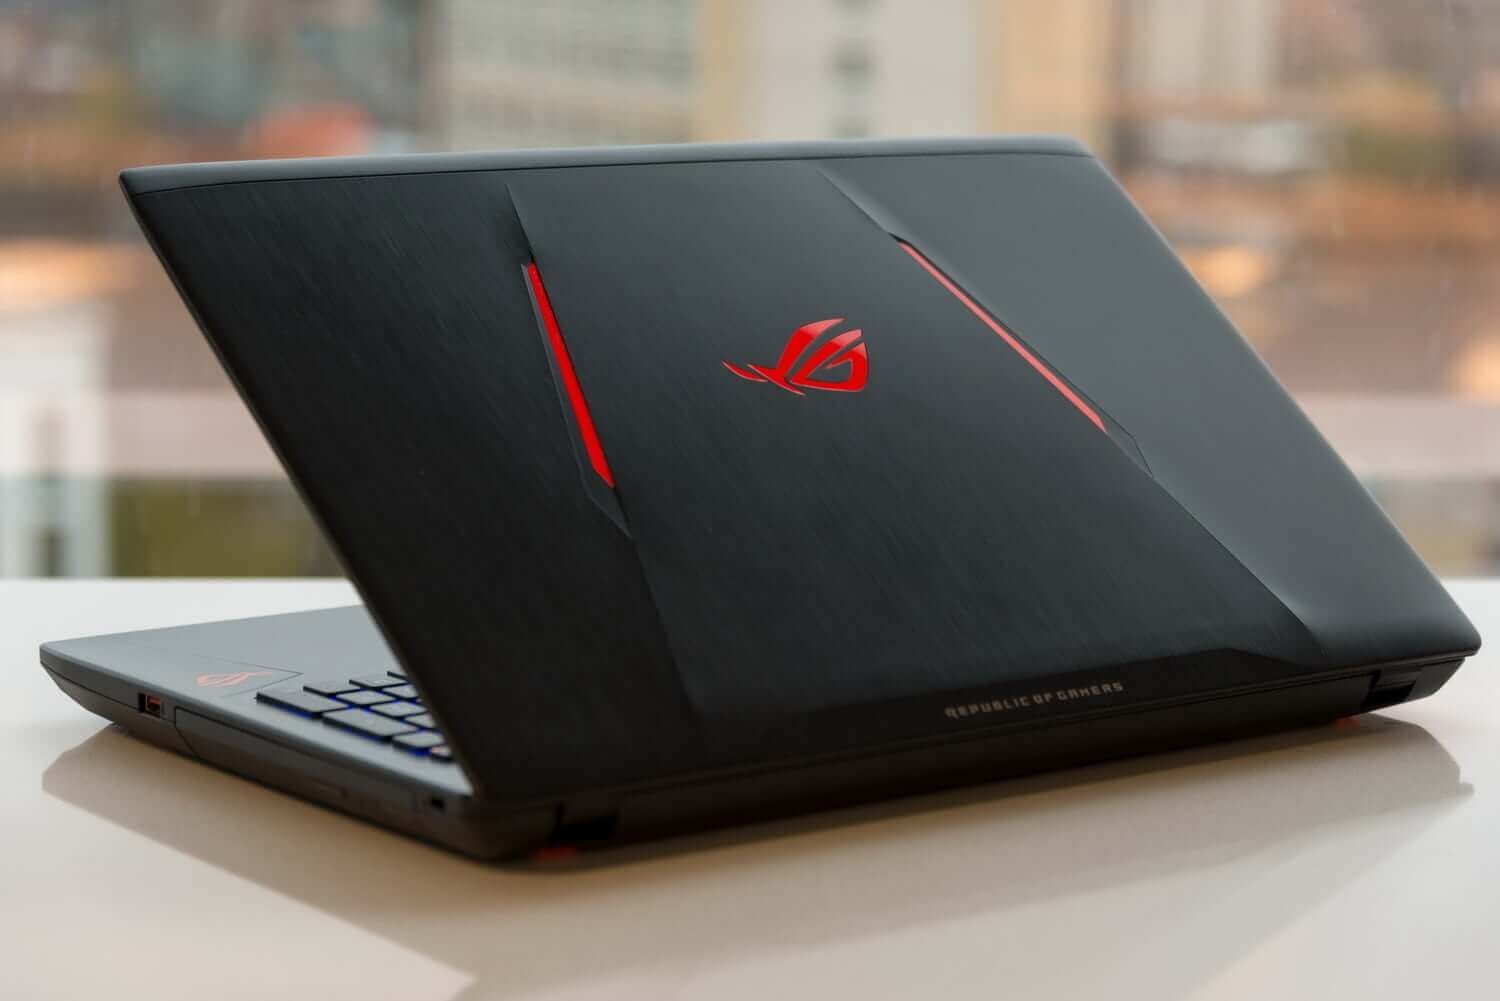 ASUS ROG GL553 i7 SSD Gamer Laptop under $1500 dollars, £1200 GBP